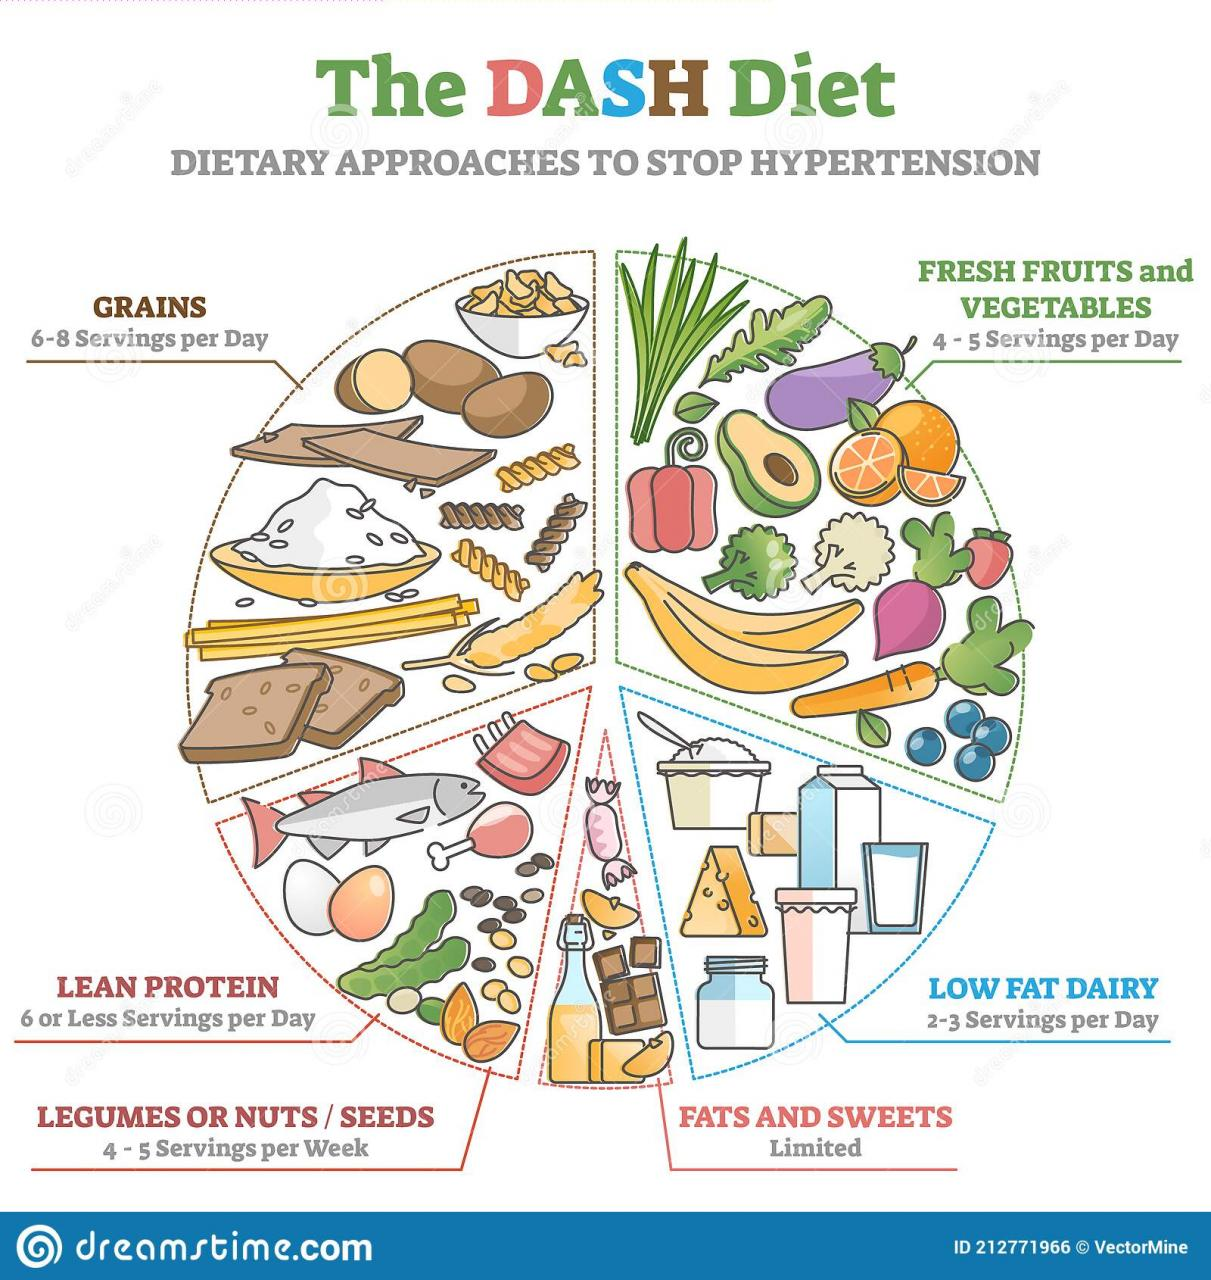 Association between DASH diet (Dietary Approaches to Stop Hypertension) and  hypertension in adolescents: A cross-sectional school-based study -  Clinical Nutrition ESPEN